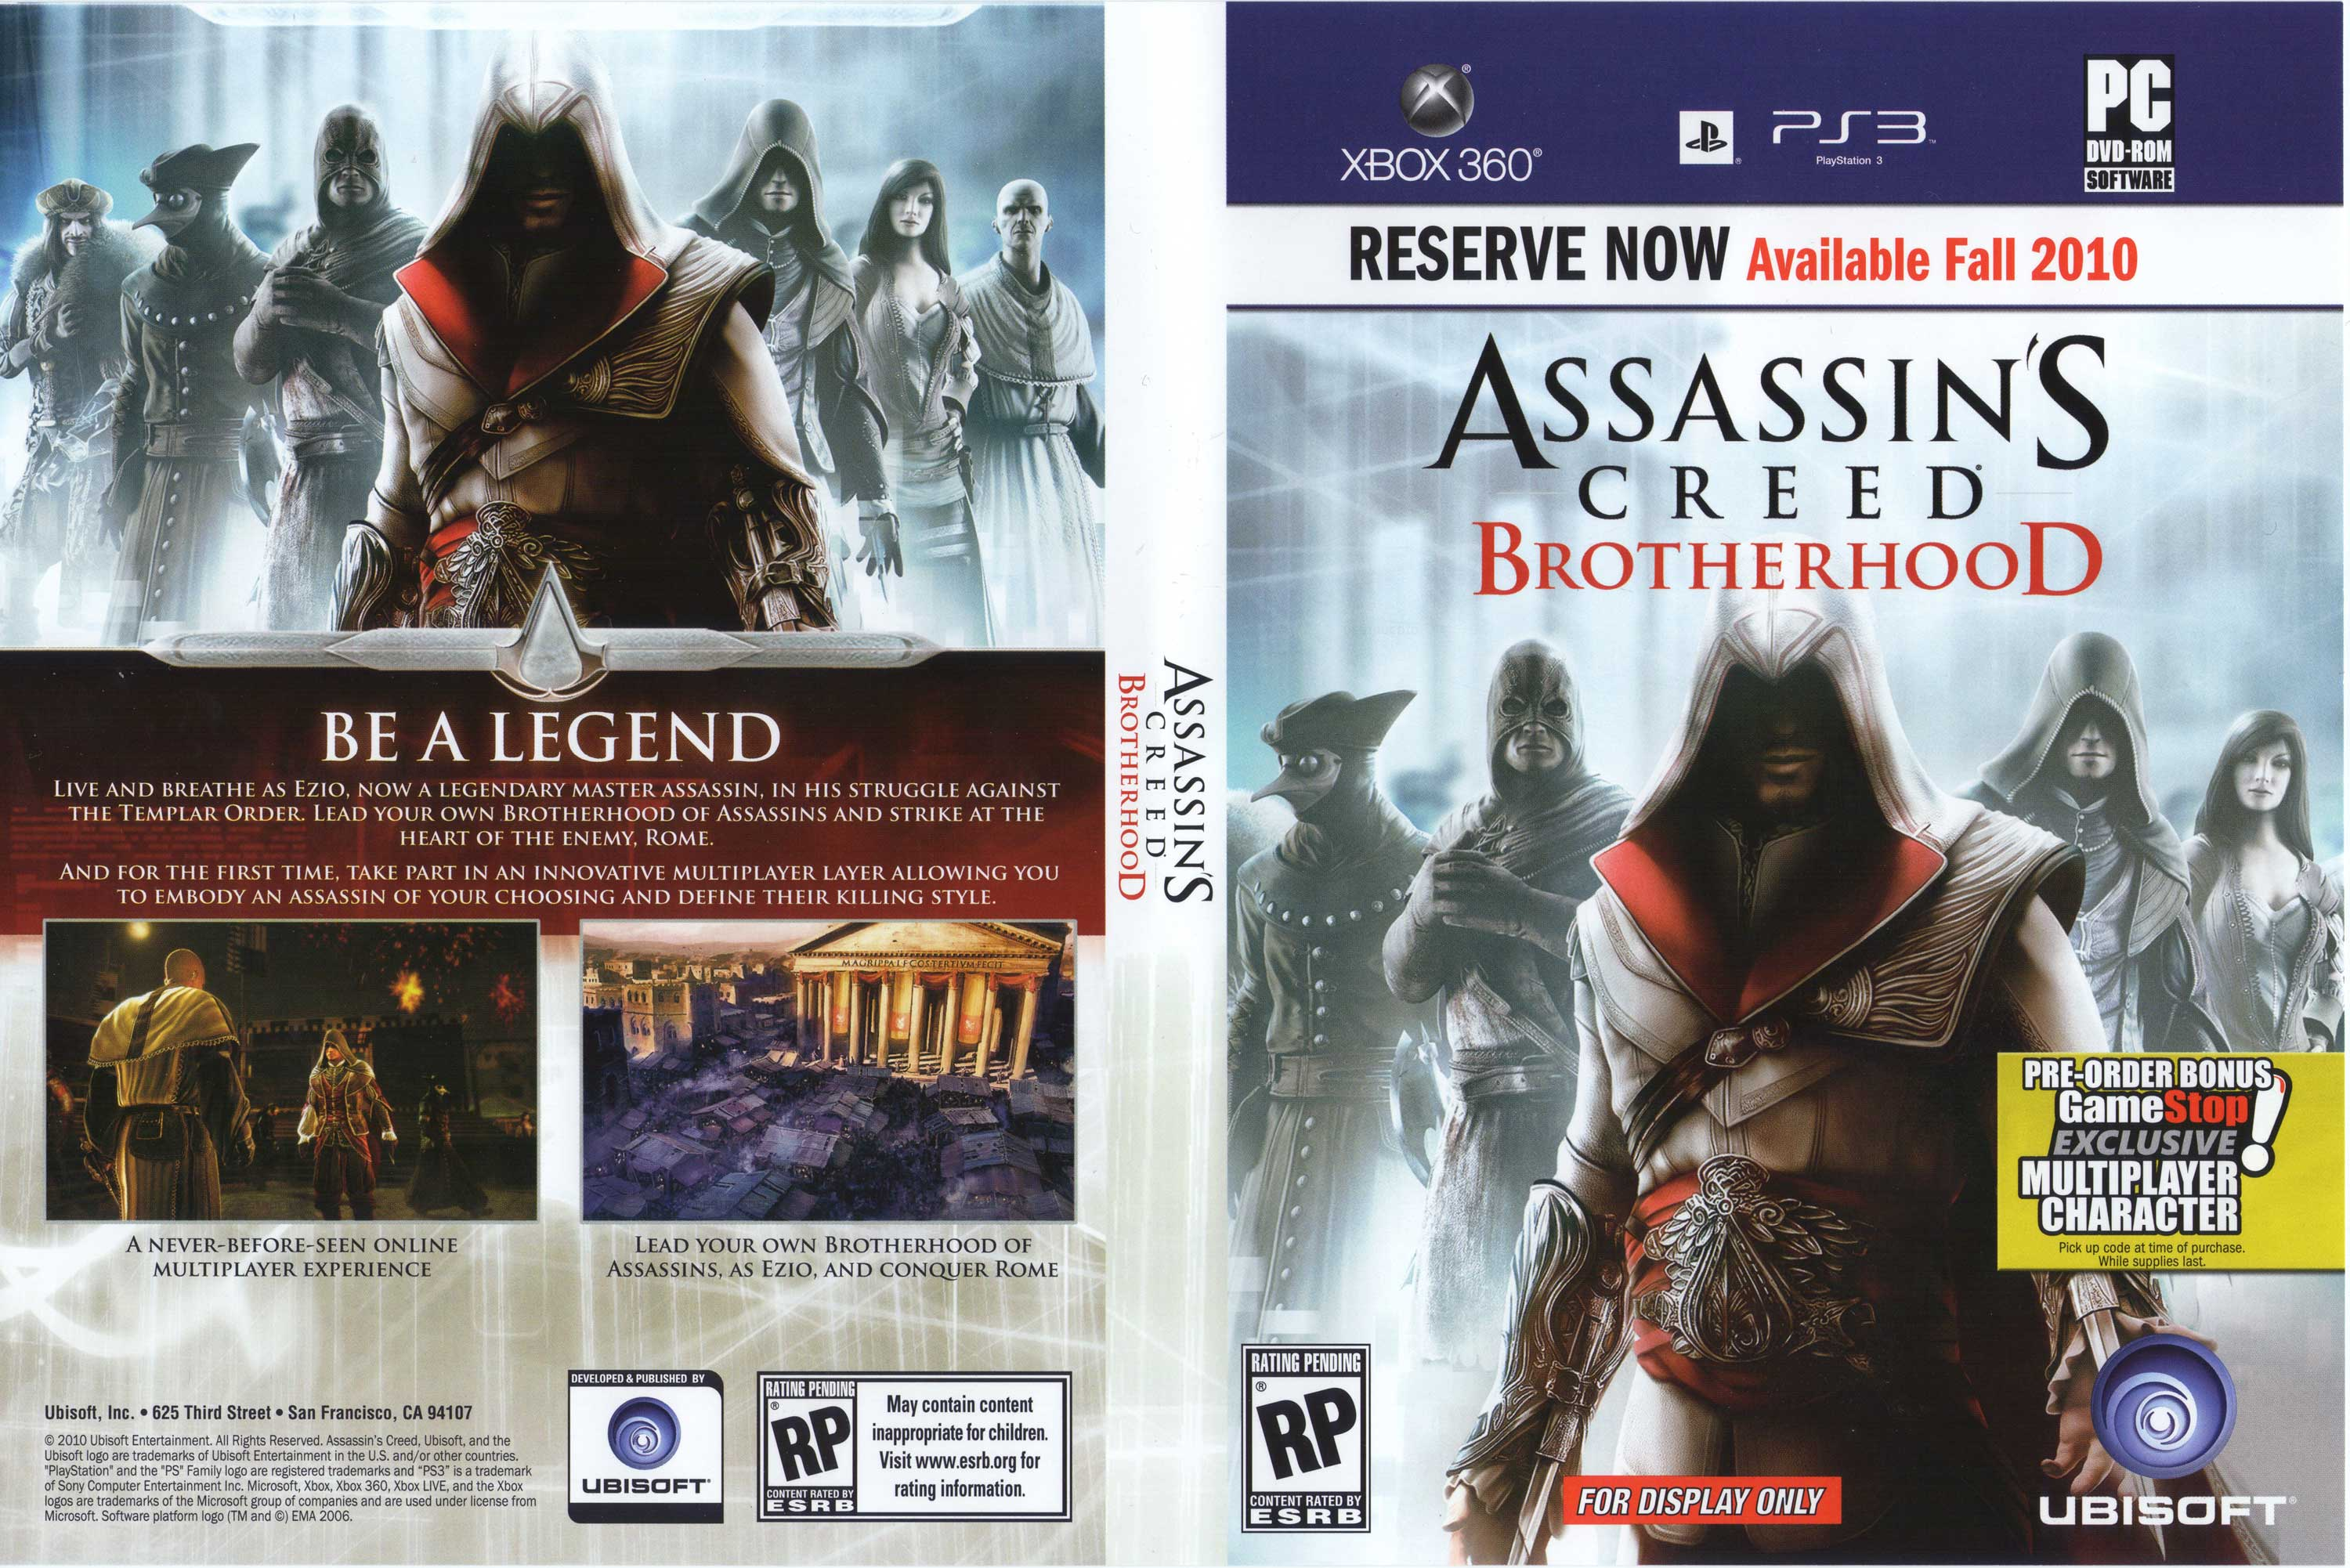 Assassin's Creed: Brotherhood confirmado por Ubi… y será multiplayer [CHAN y Megafoto]